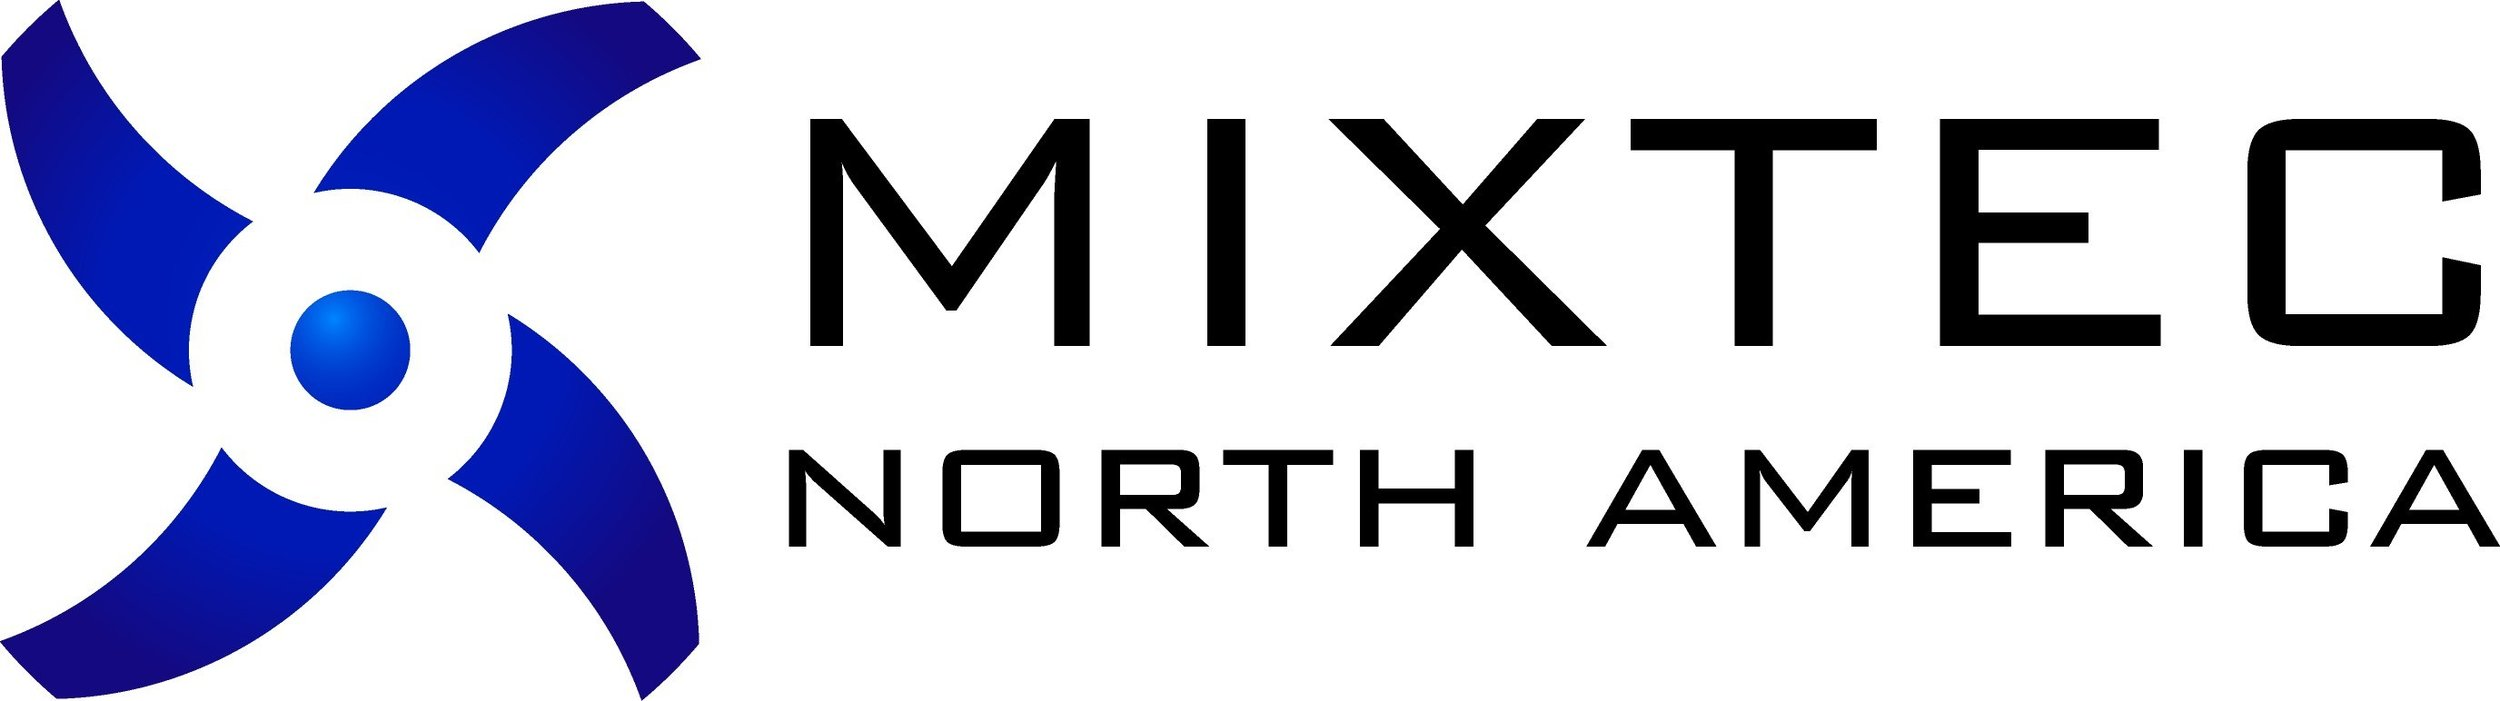 Mixtec-Logo-August-2016.jpg